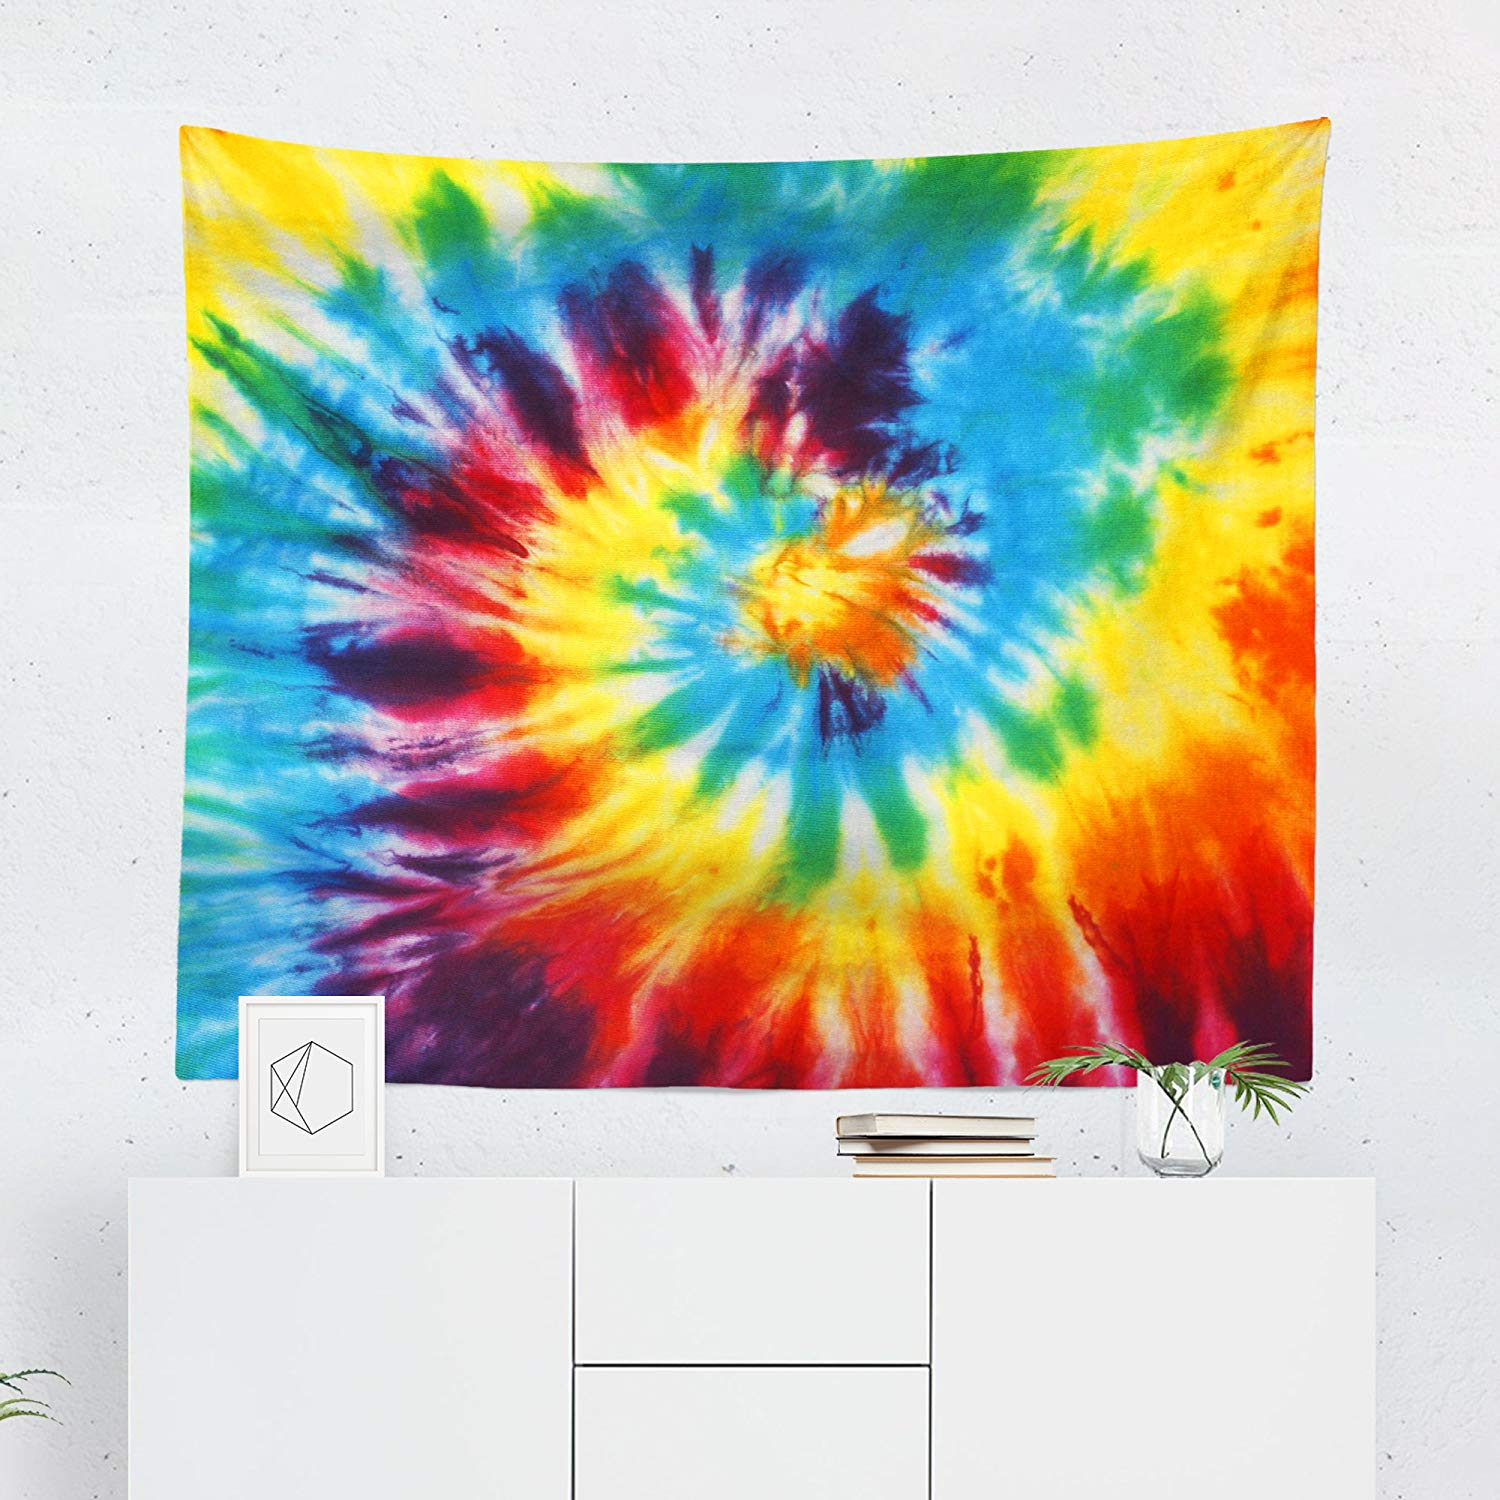 Buy Tie Dye Hippie Tapestry Spiral Abstract Colorful Wall Tapestries Hanging Decor Bedroom Dorm College Living Room Home Art Print Decoration Decorative Printed In The Usa Small Medium Large